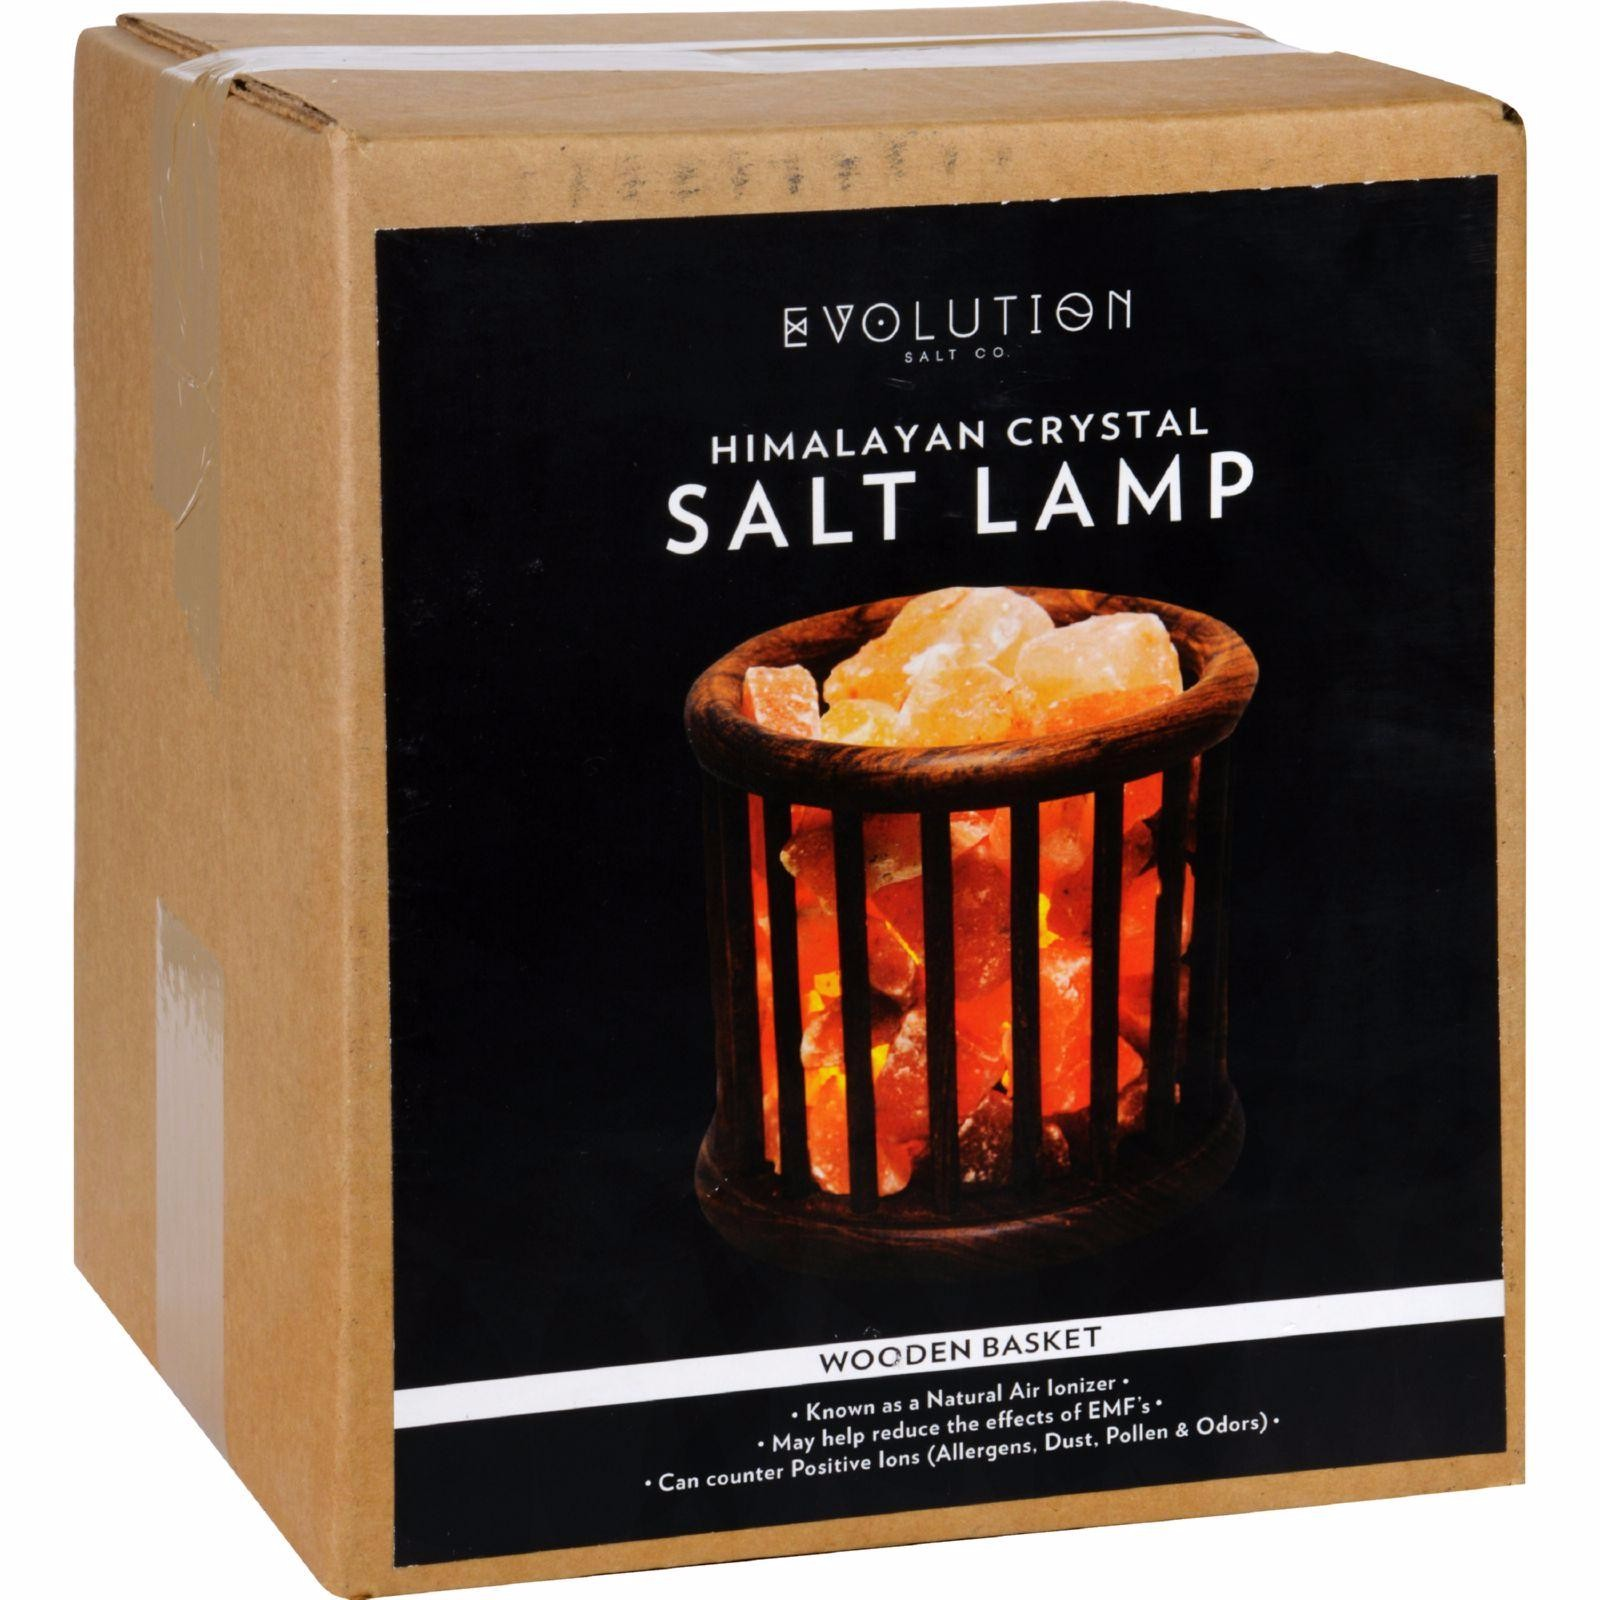 evolution salt crystal salt lamp wooden basket 1 count - Evolution Salt Lamp